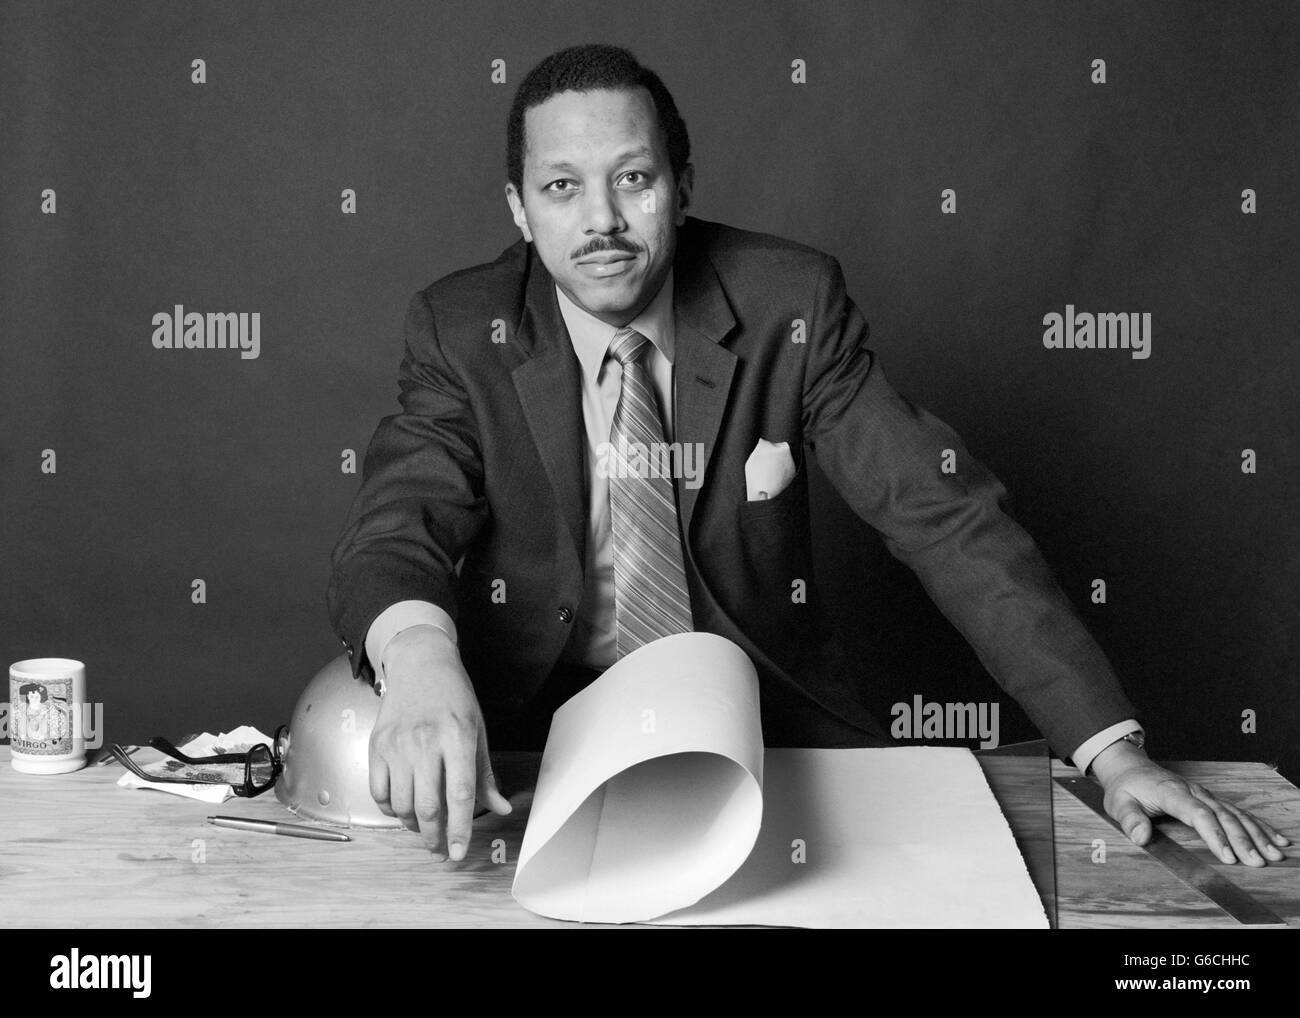 1970s AFRICAN-AMERICAN BUSINESSMAN CONTRACTOR ARCHITECT BUILDER AT TABLE WITH BUILDING PLANS AND HARD HAT LOOKING - Stock Image